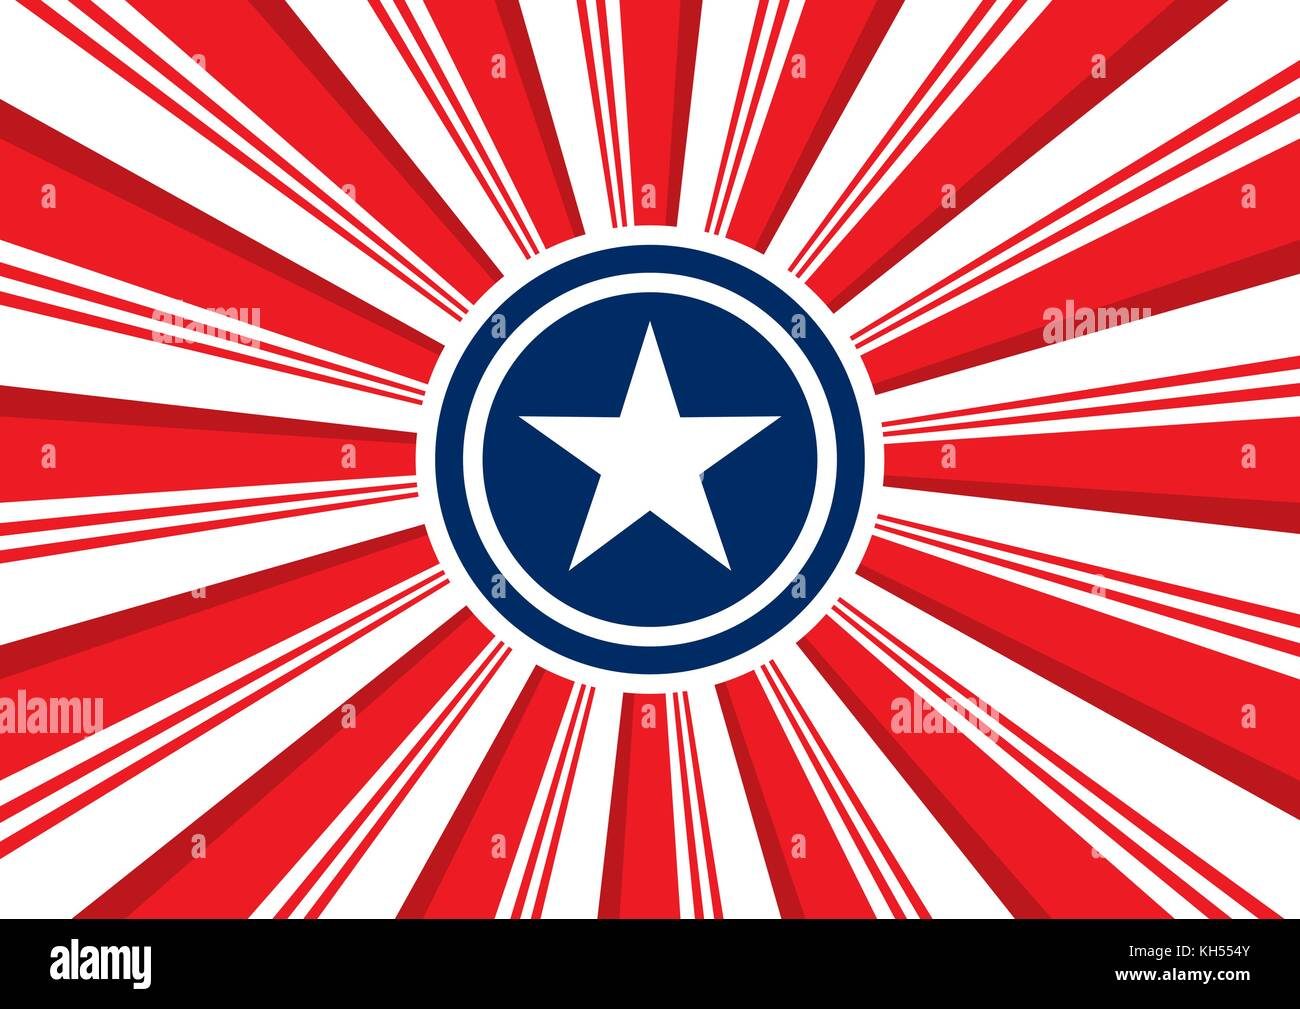 Patriotic Background The Stylized Image Of The Symbols Of The